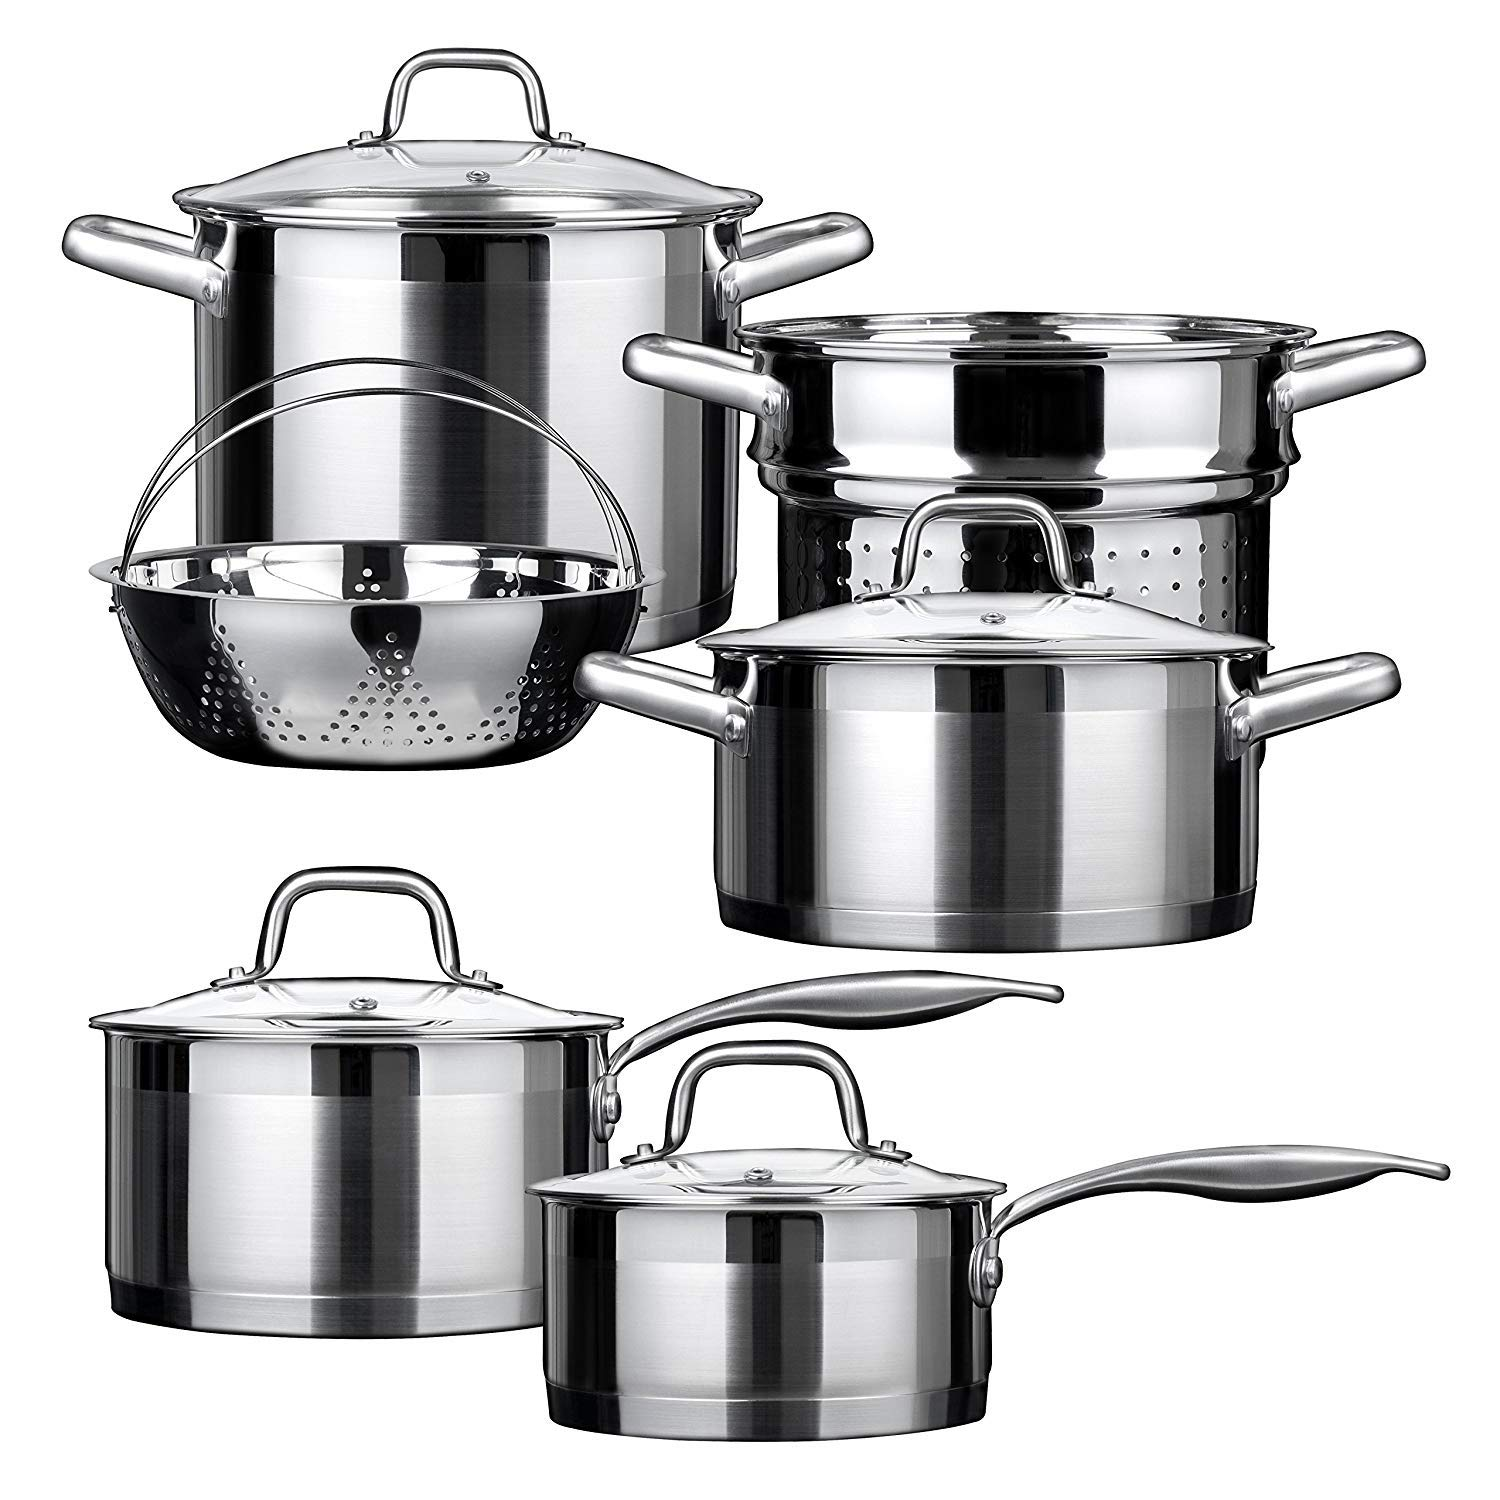 Duxtop Professional Stainless-Steel Cookware